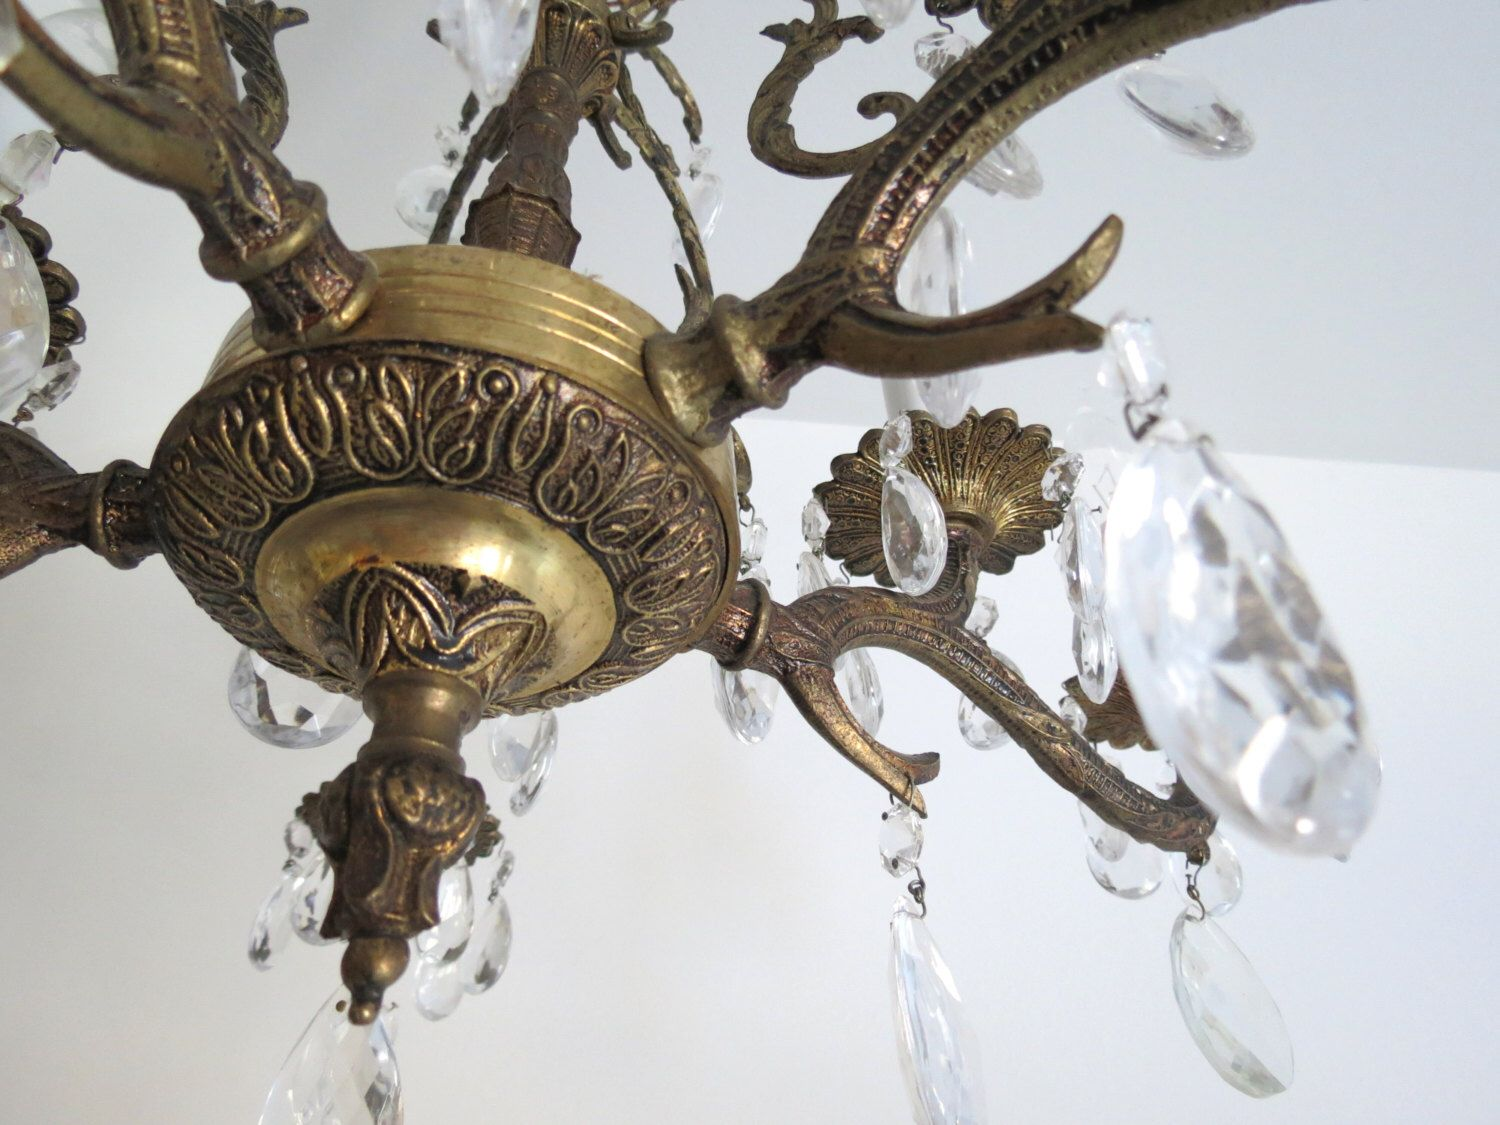 Antique Brass Chandelier Vintage Spanish Style Ornate Large